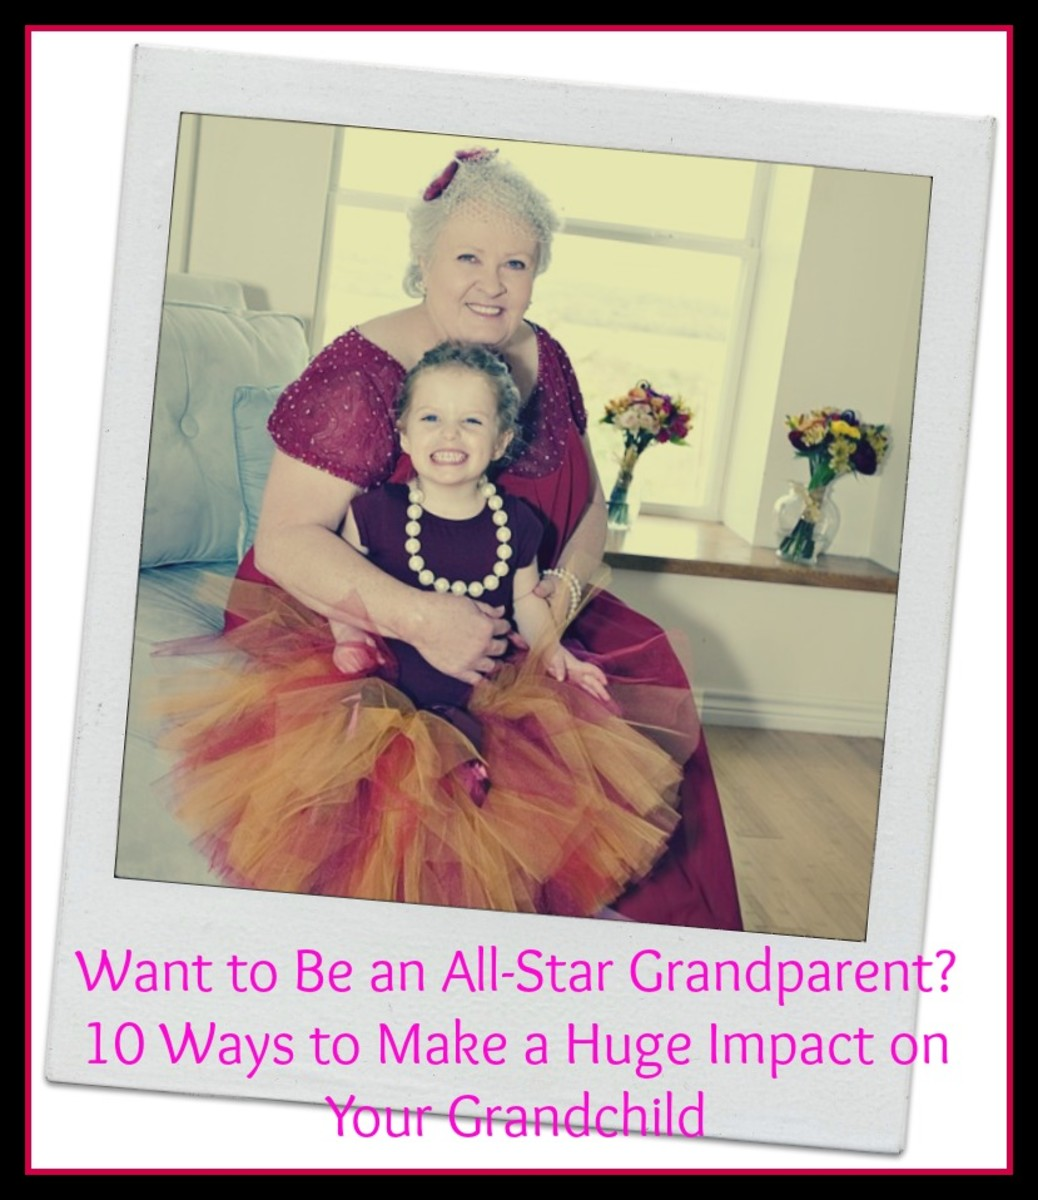 Grandparents can play such a powerful role in the lives of their grandchildren. They have the time, patience, and wisdom that parents often lack. They offer the unconditional love that grandchildren crave.